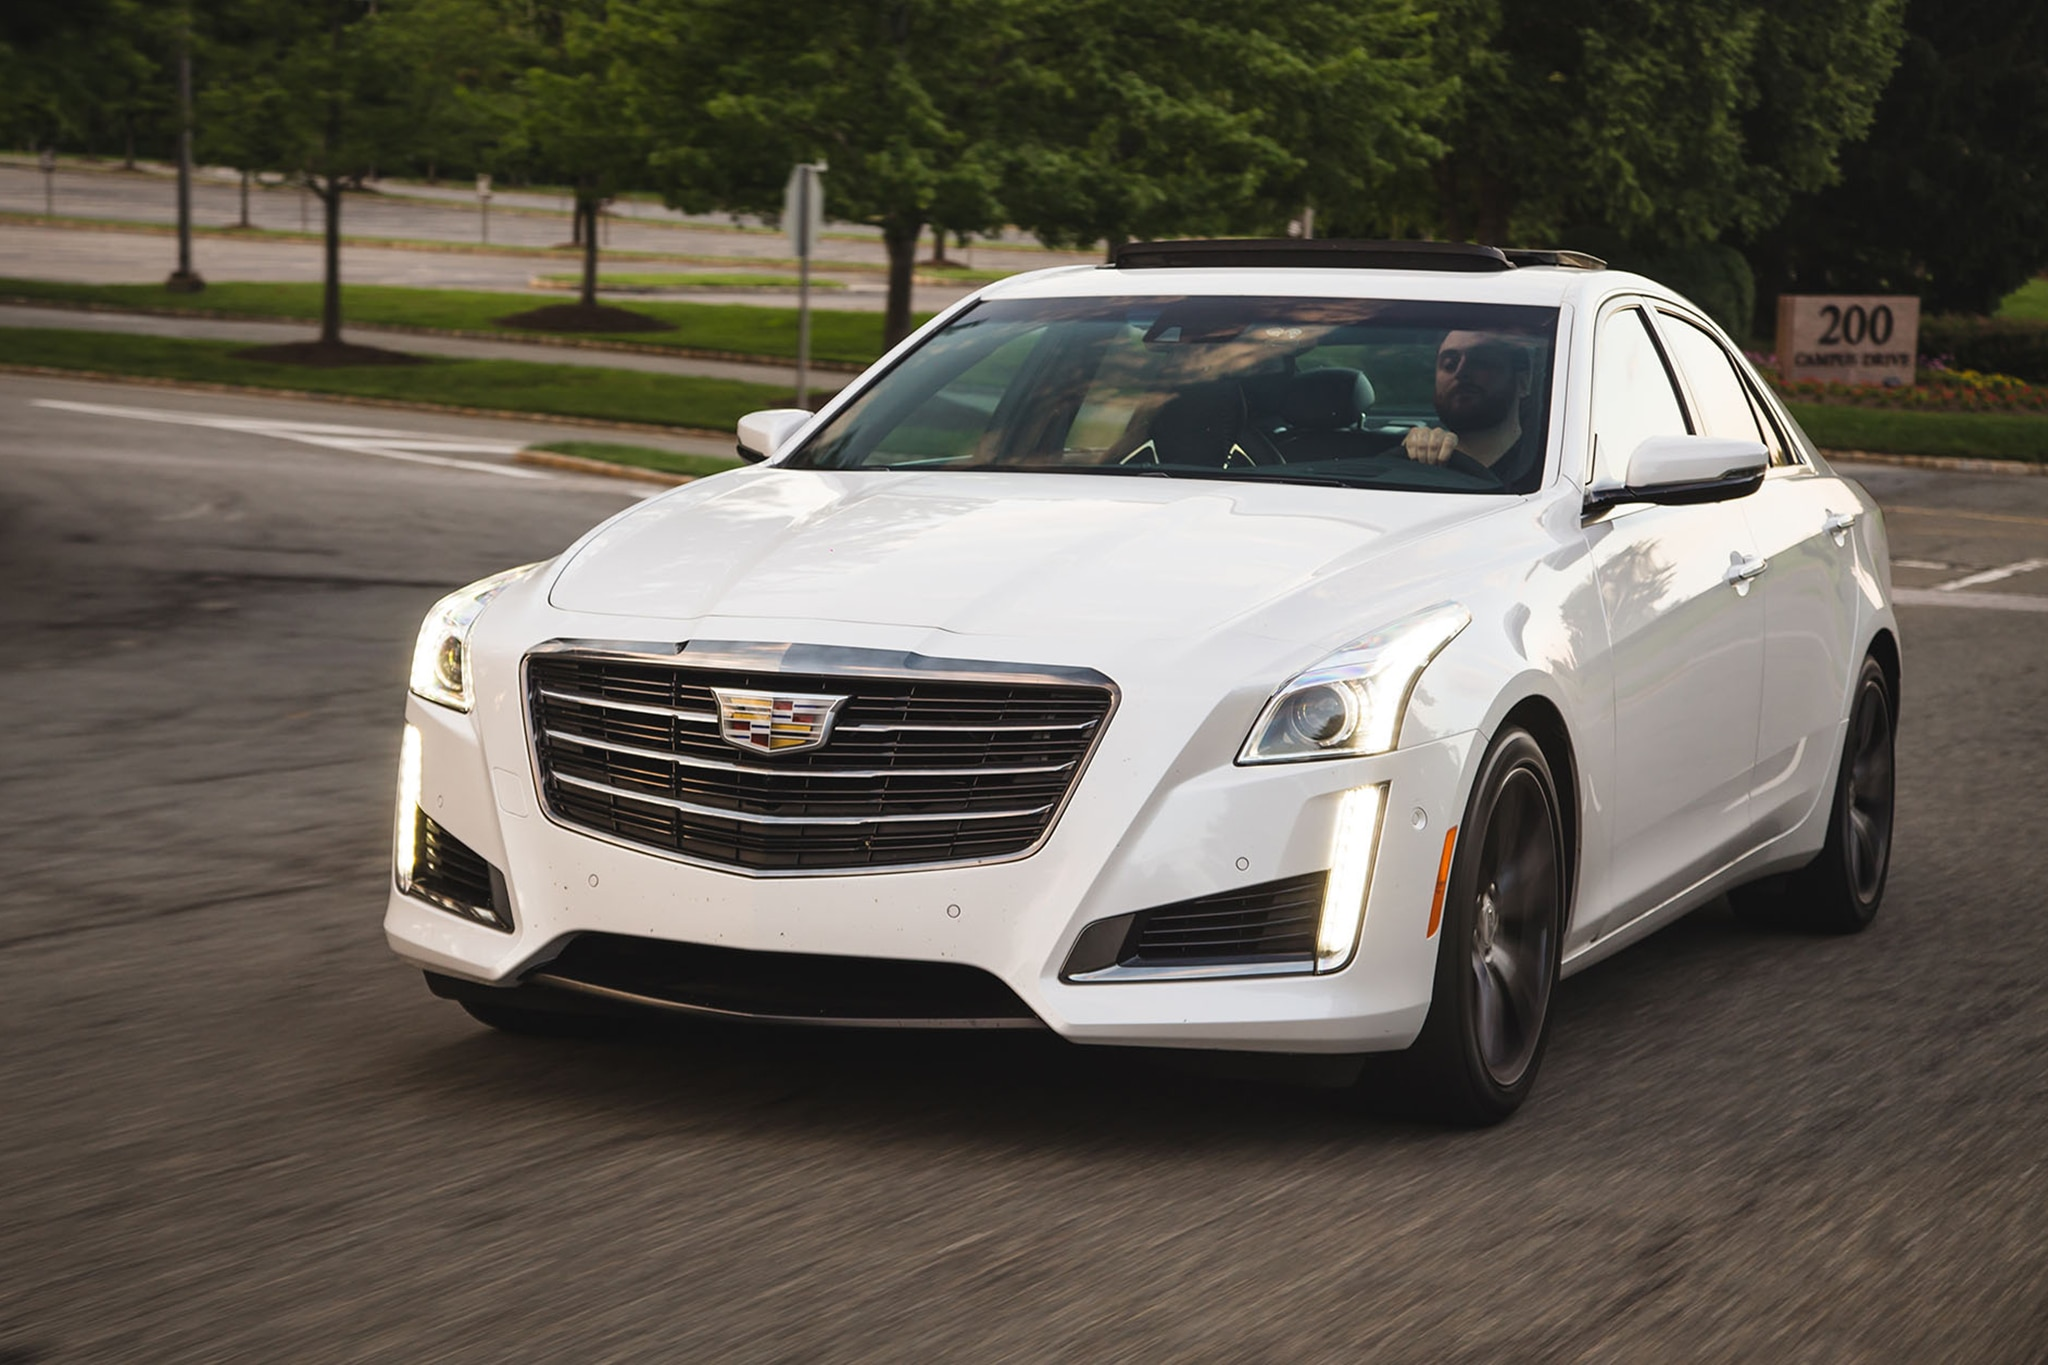 2017 Cadillac CTS Vsport Front Three Quarter In Motion 02